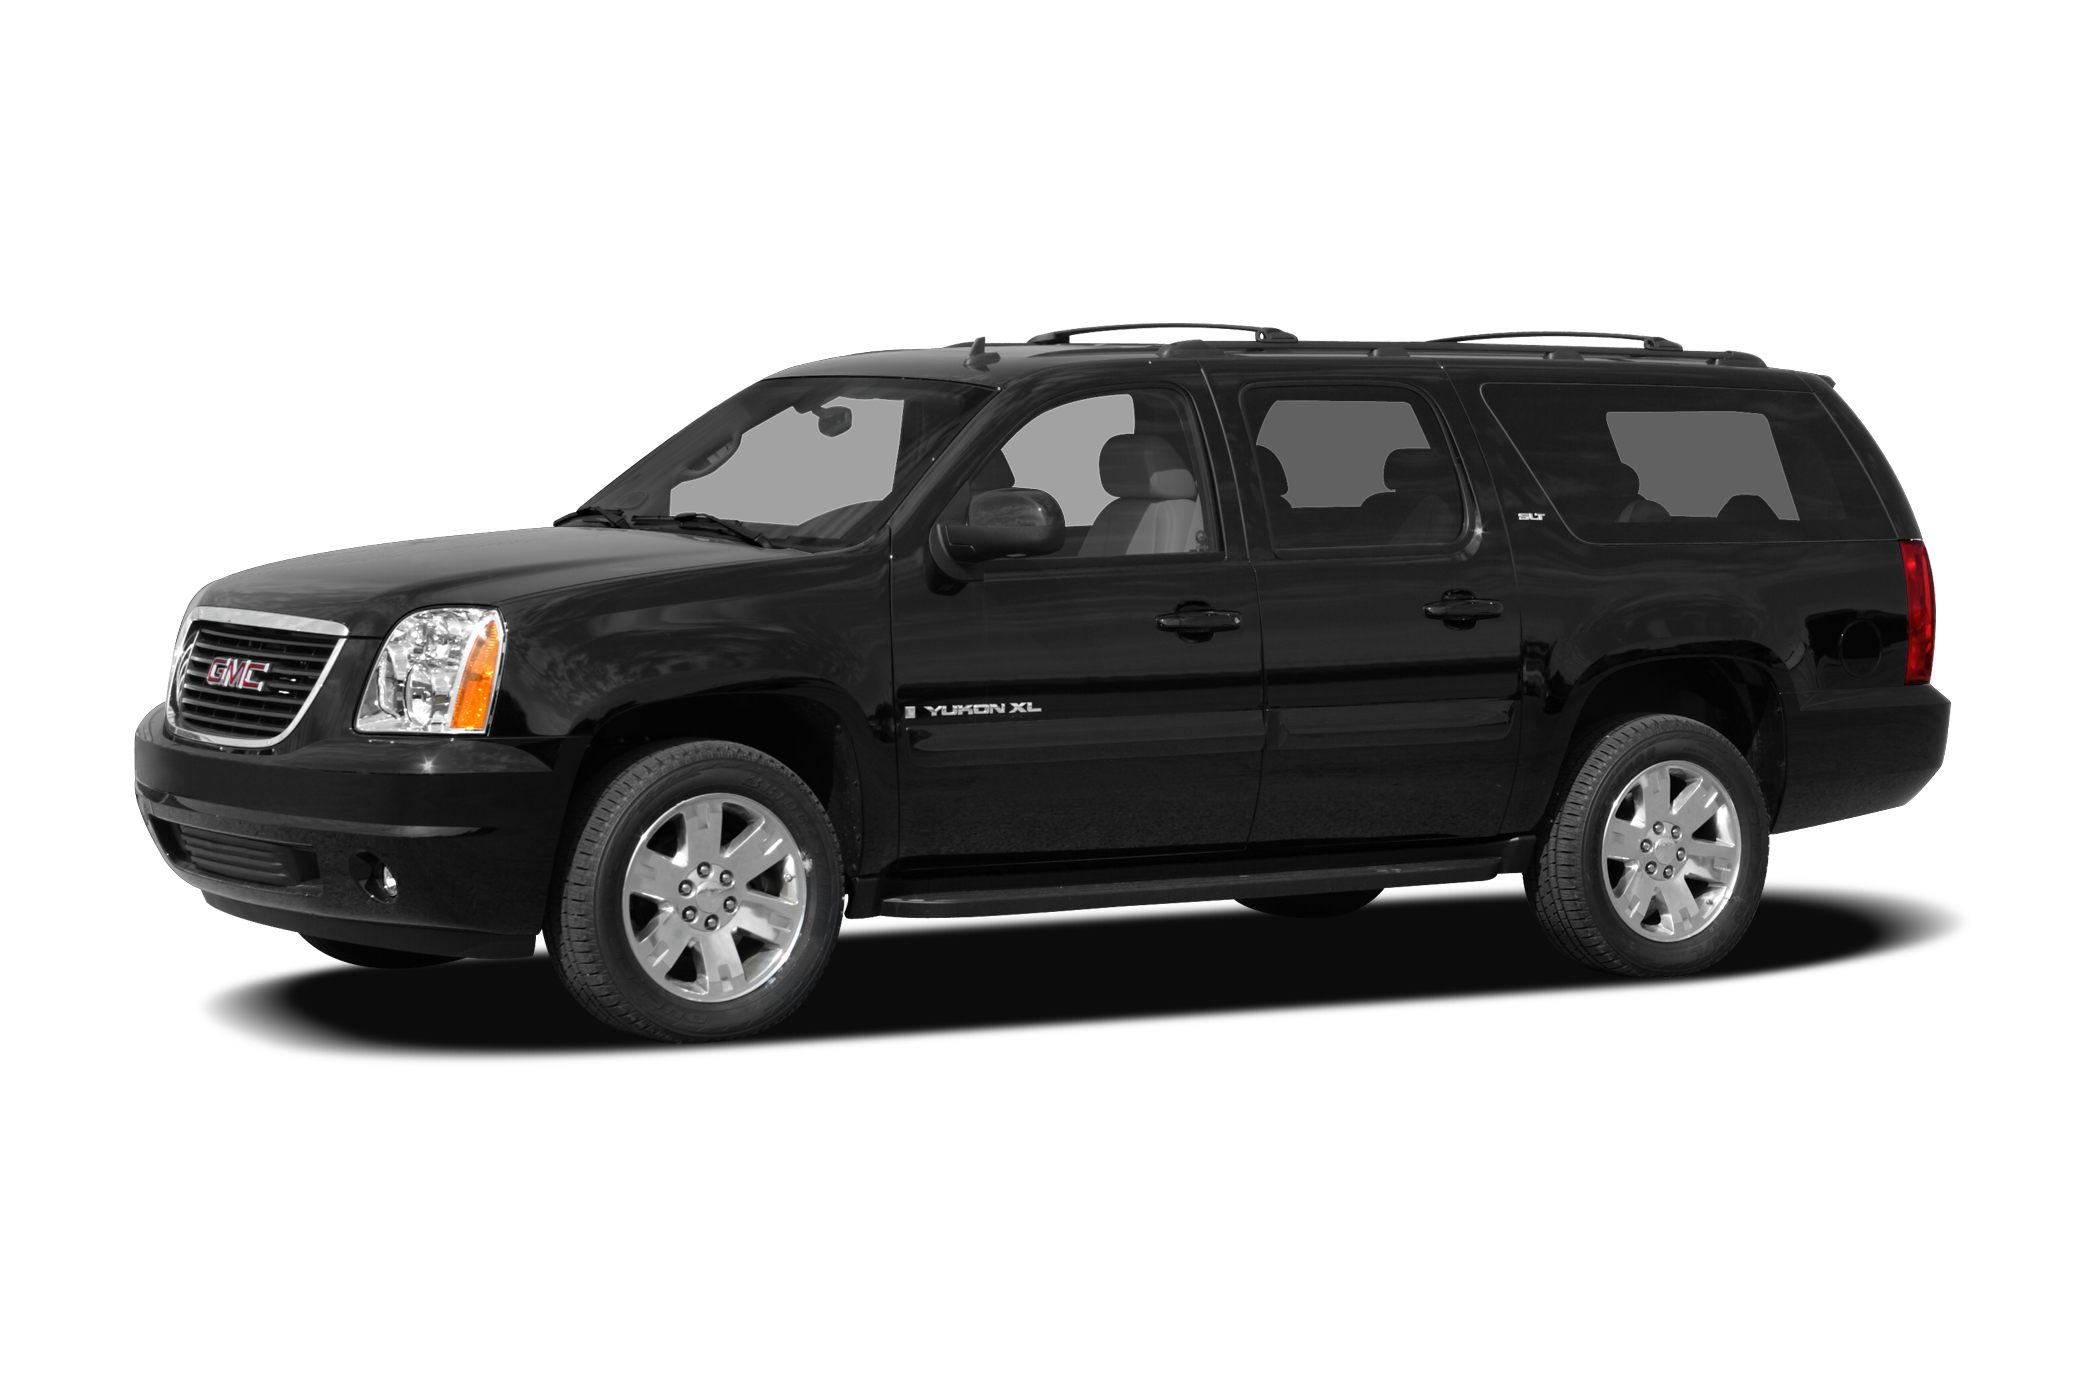 2009 GMC Yukon XL 1500 SLT1 SUV for sale in Whitefish for $29,990 with 62,525 miles.